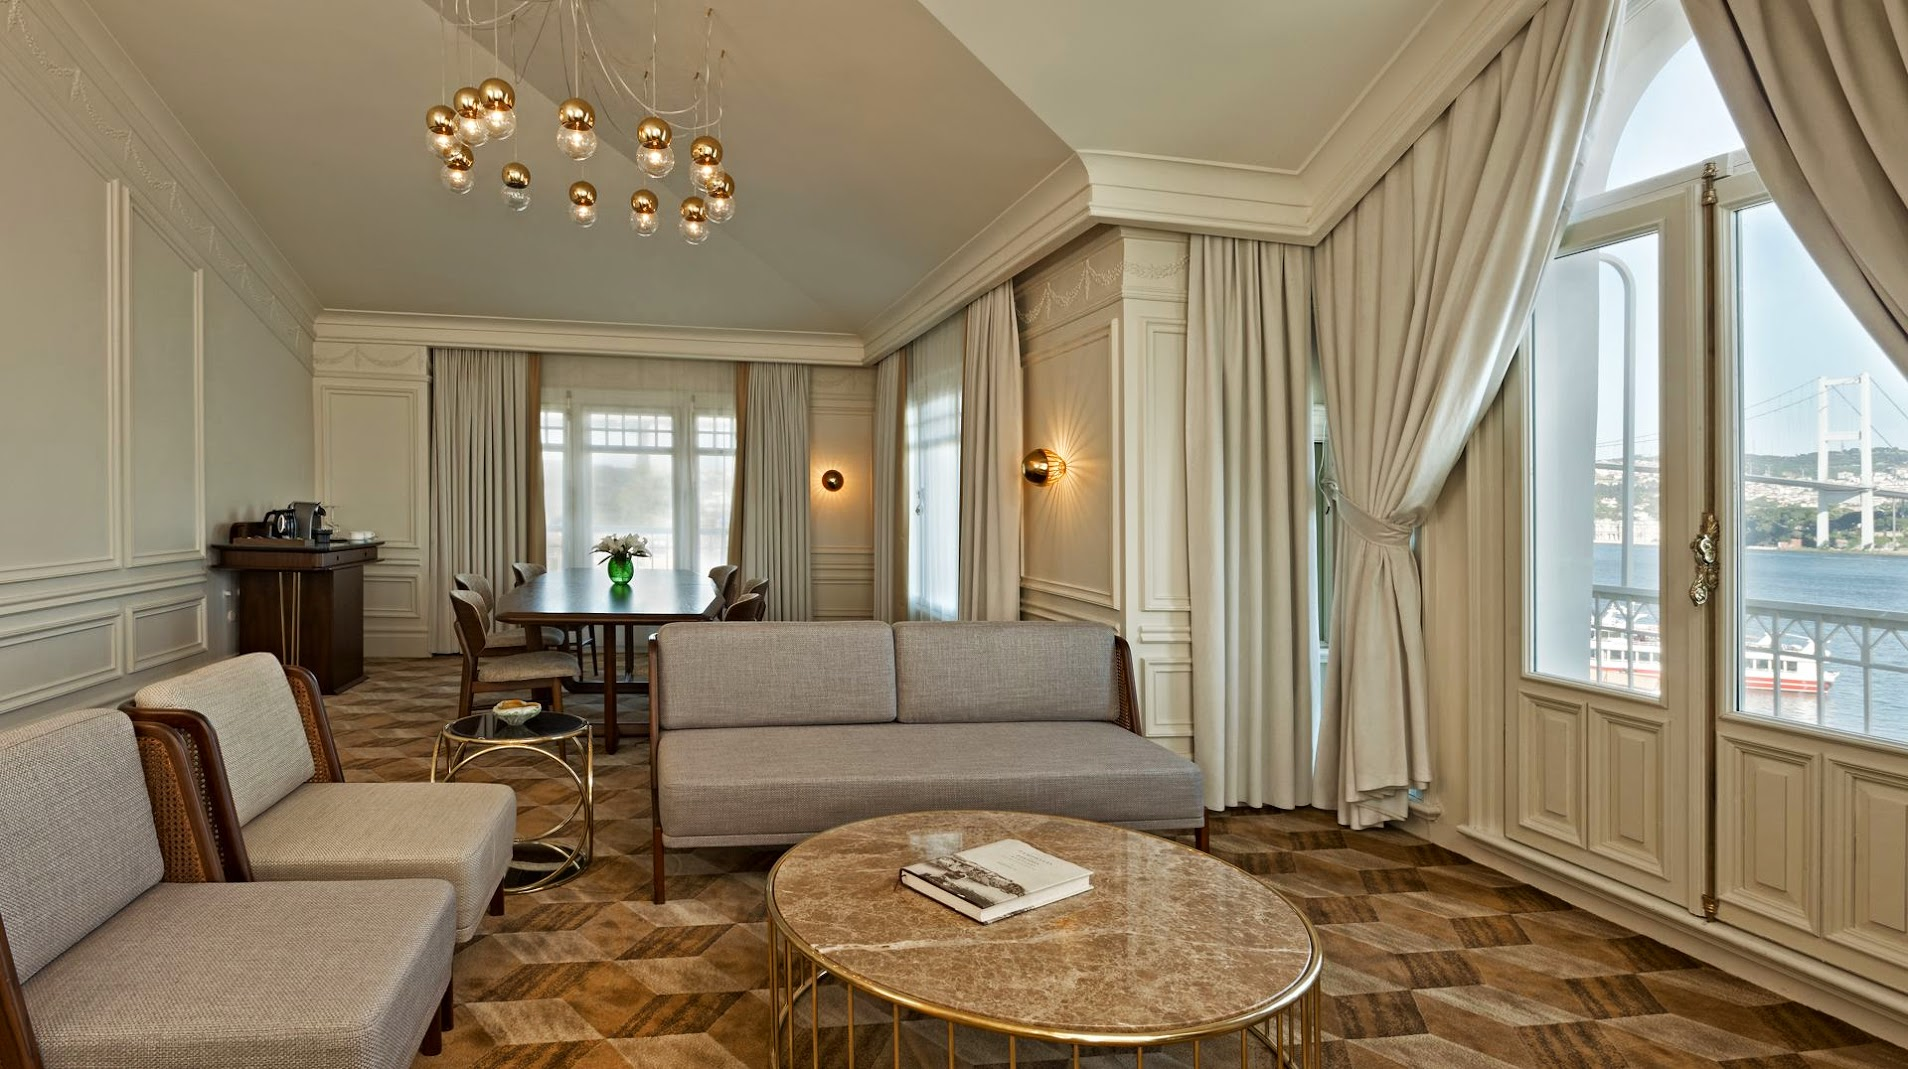 ortakoy house hotel bosphorus room